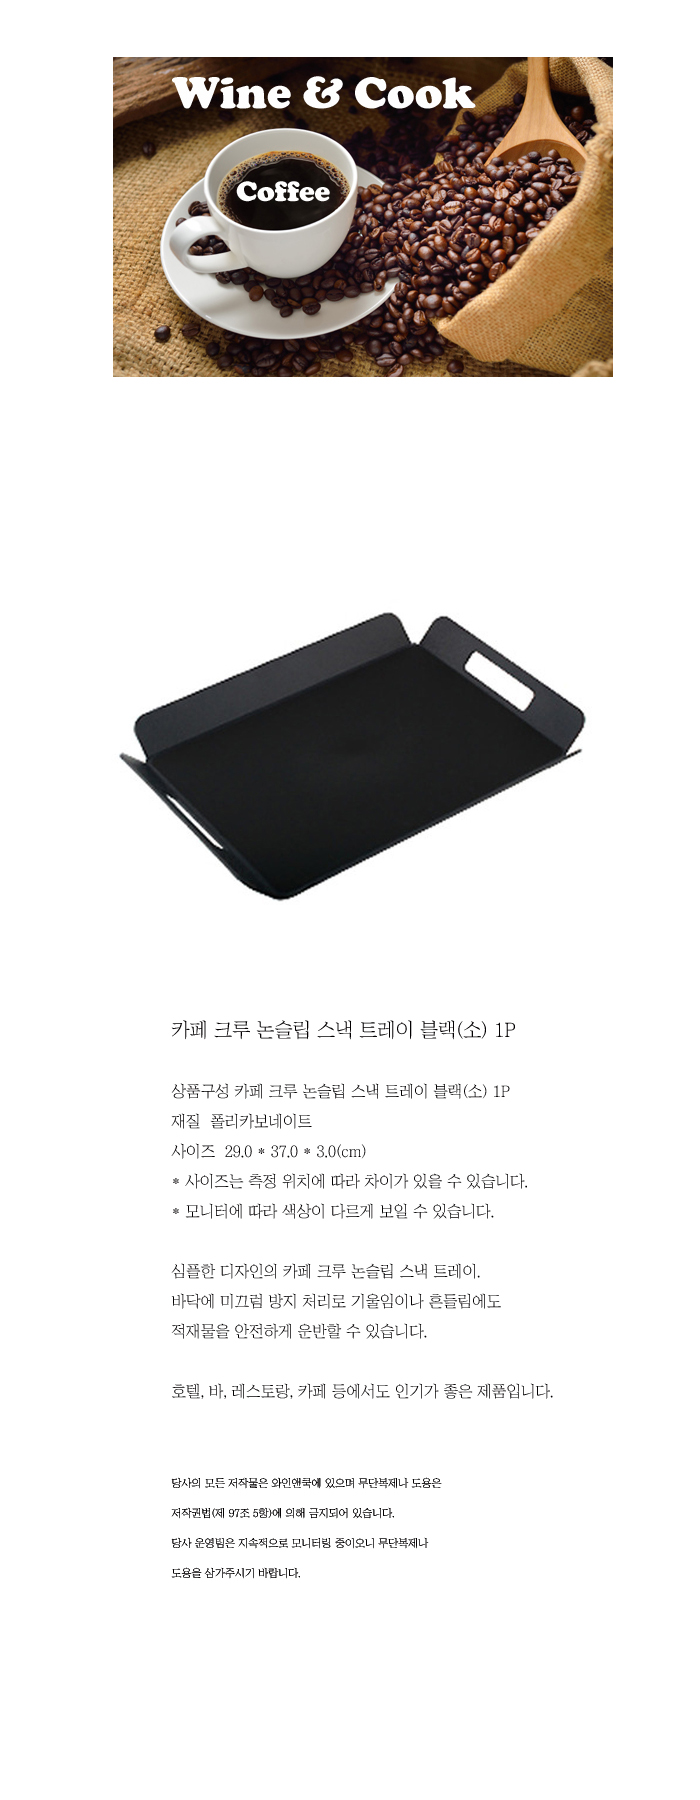 [ WINEQOK ] Cafe Crew Non Slip Snack Tray Black(Small) 1P